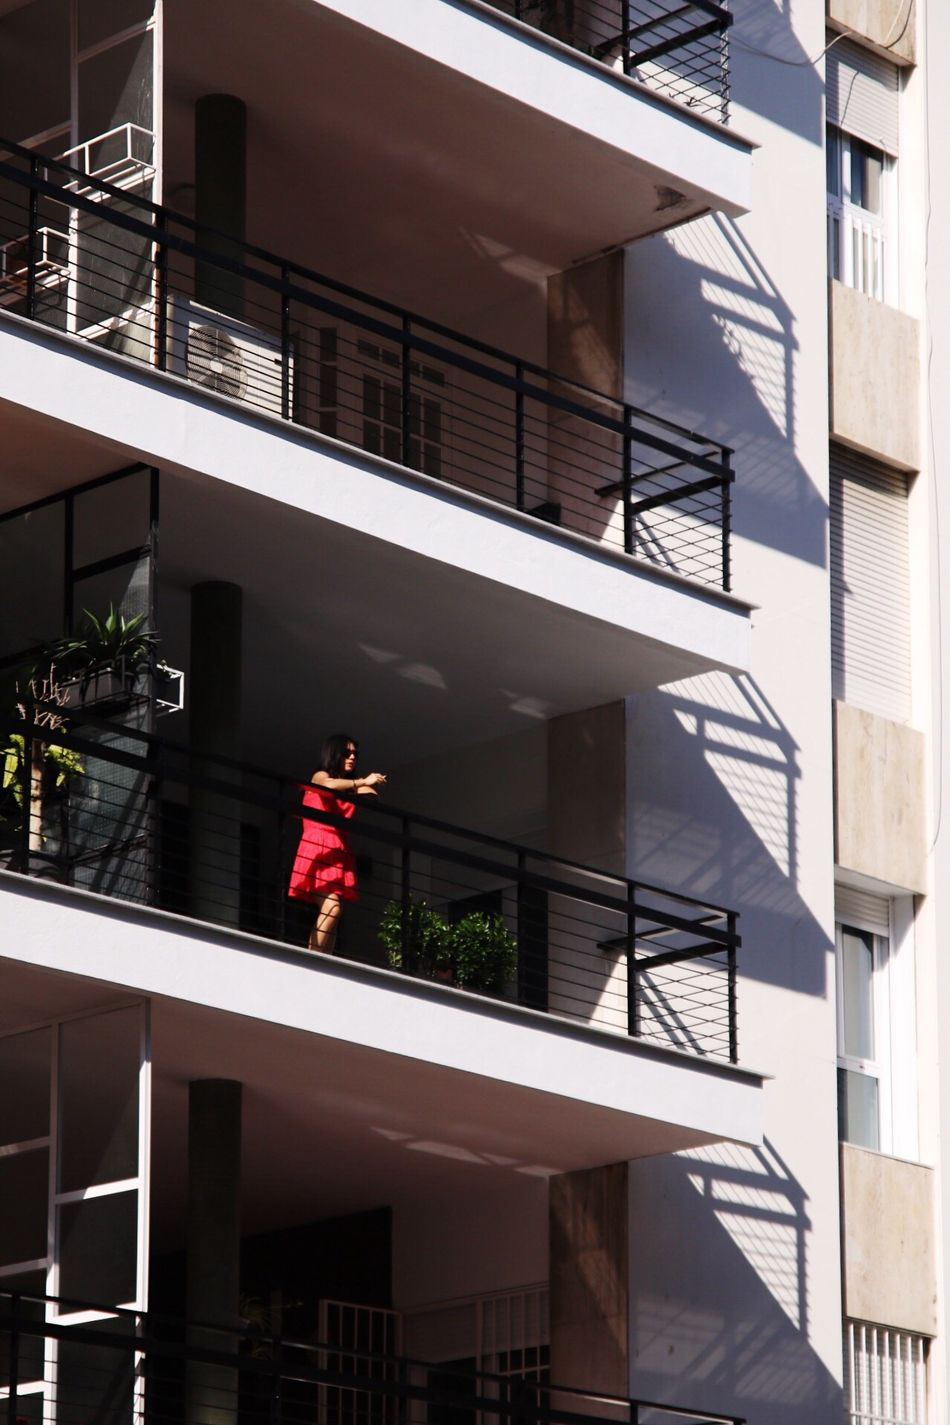 Art Is Everywhere Balcony One Person Woman Lady Red Dress Chilling Alone The Secret Spaces